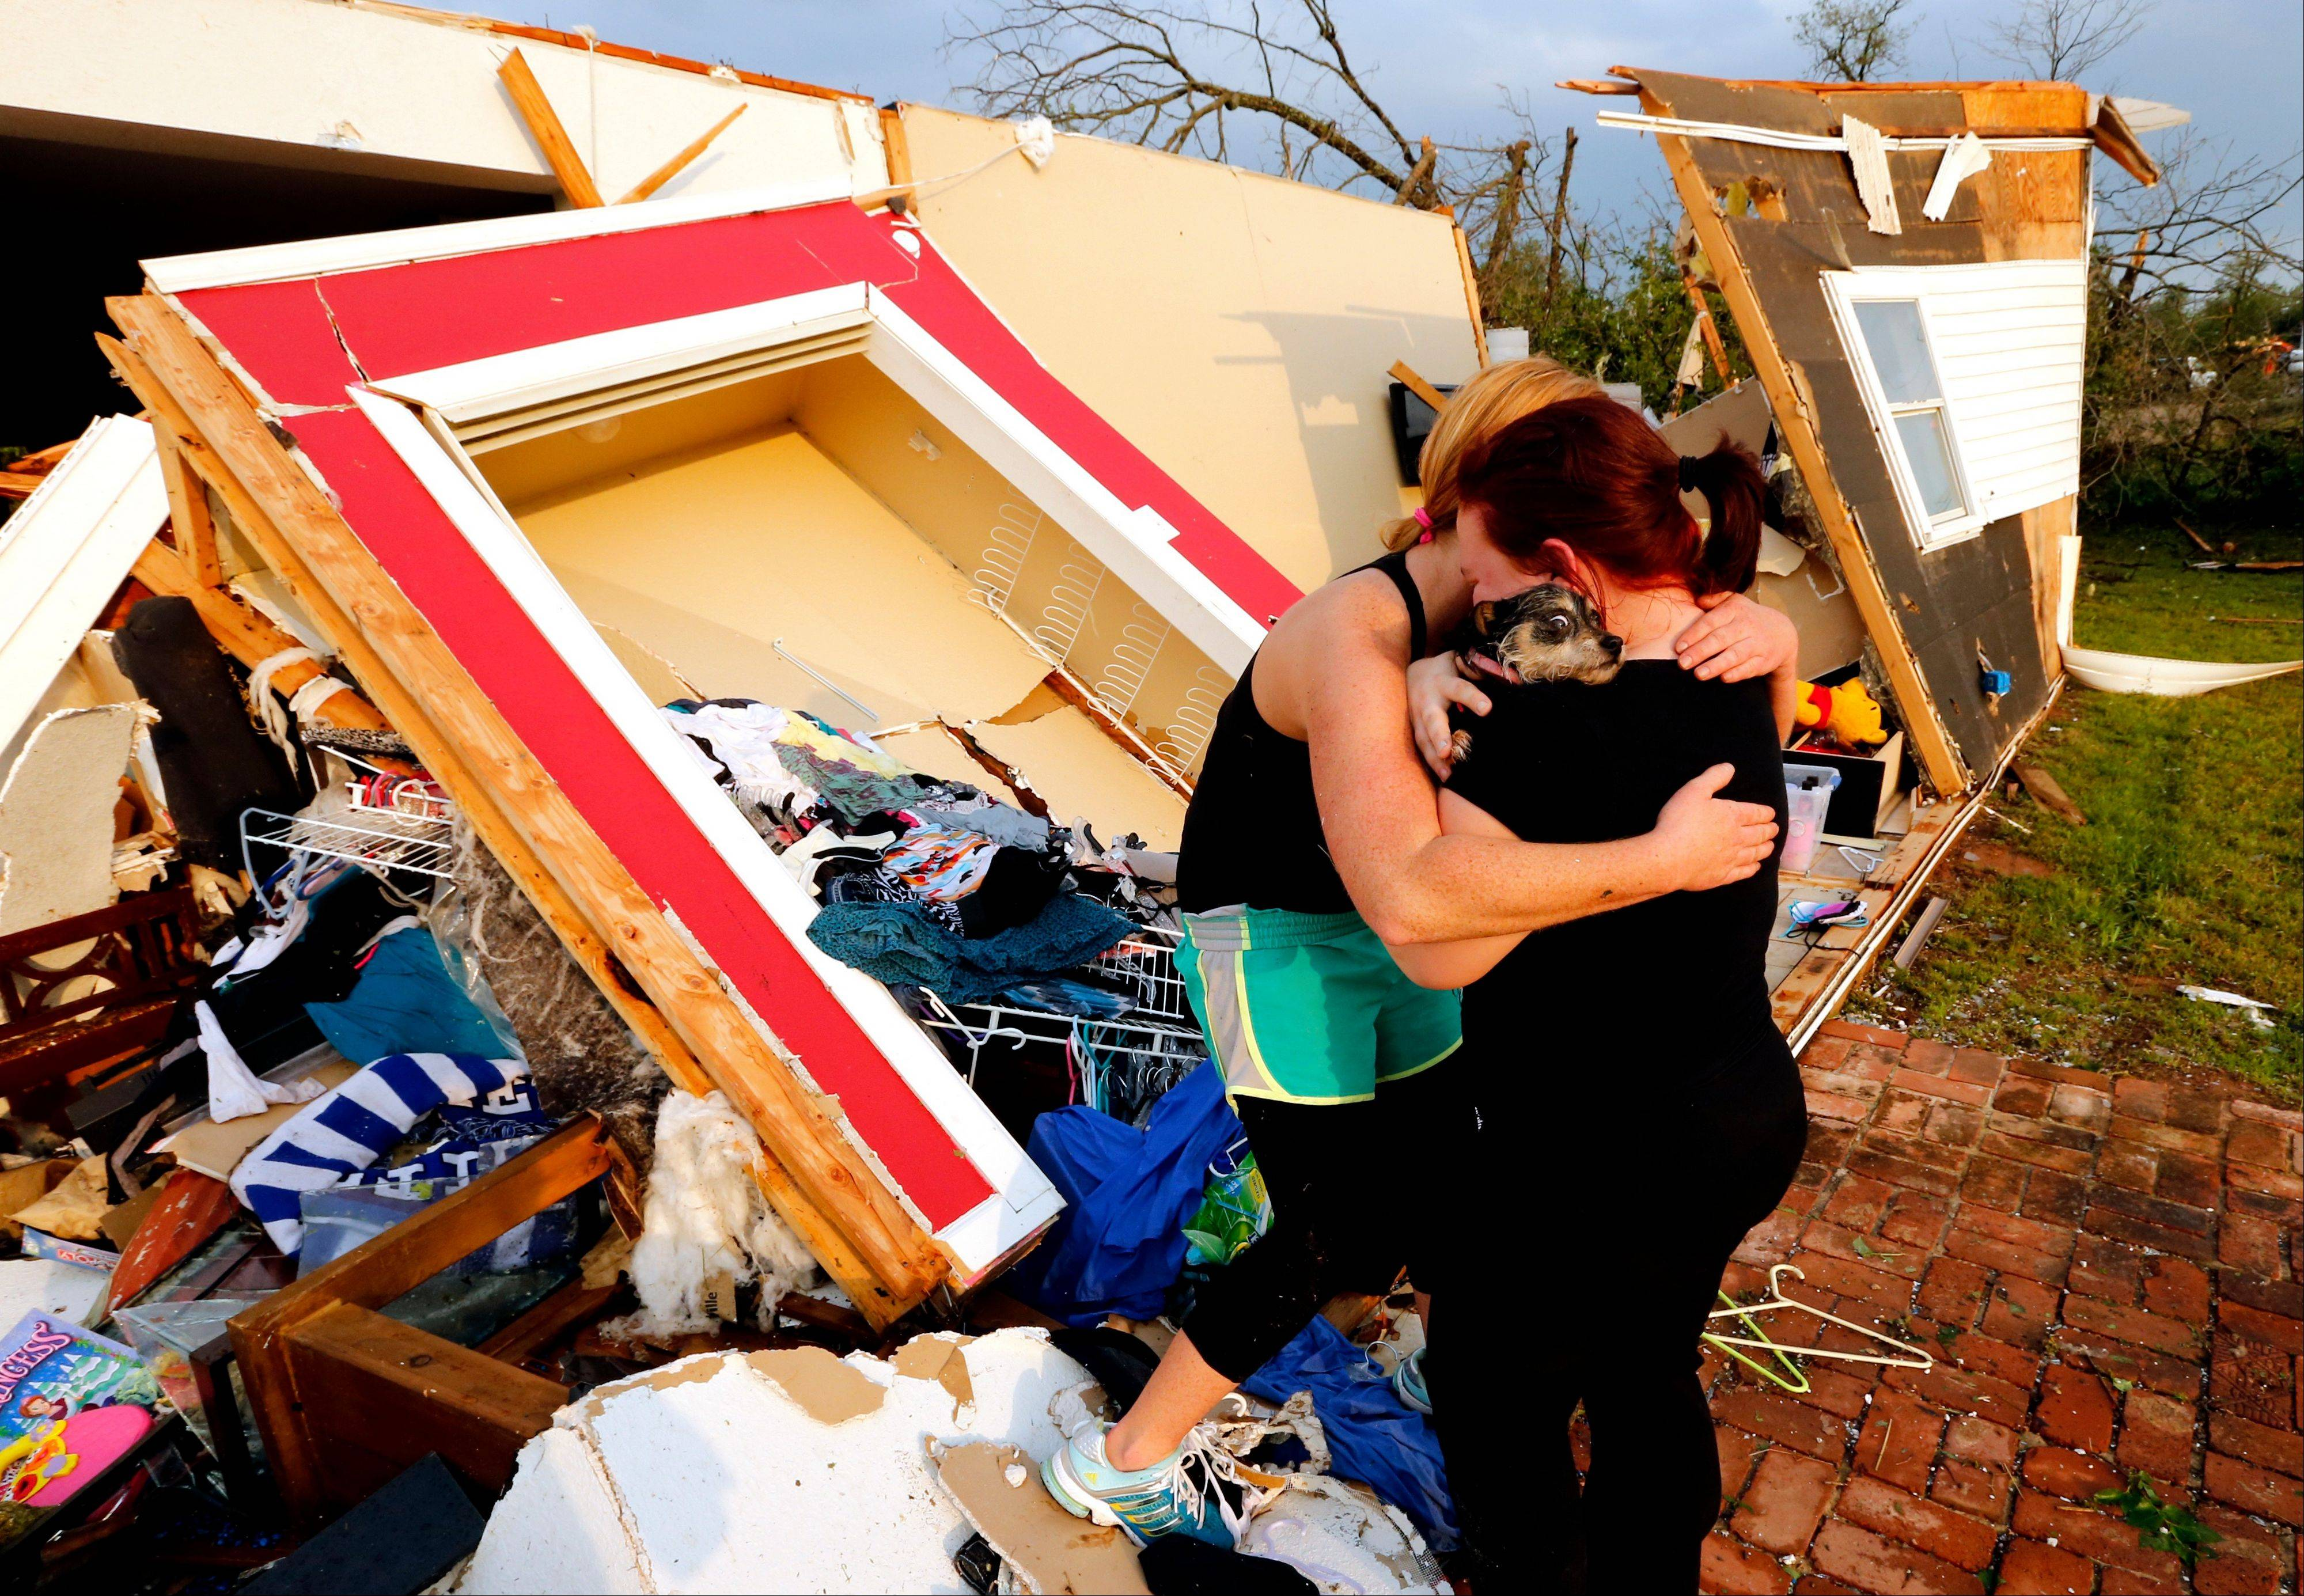 Alli Christian, left, returns Jessica Wilkinson's dog Bella to her after finding the pet amid the wreckage of Wilkinson's home shortly after a tornado struck near 156th street and Franklin Road on Sunday, May 19, 2013, in Norman, Okla. No one was in the home when the storm struck.